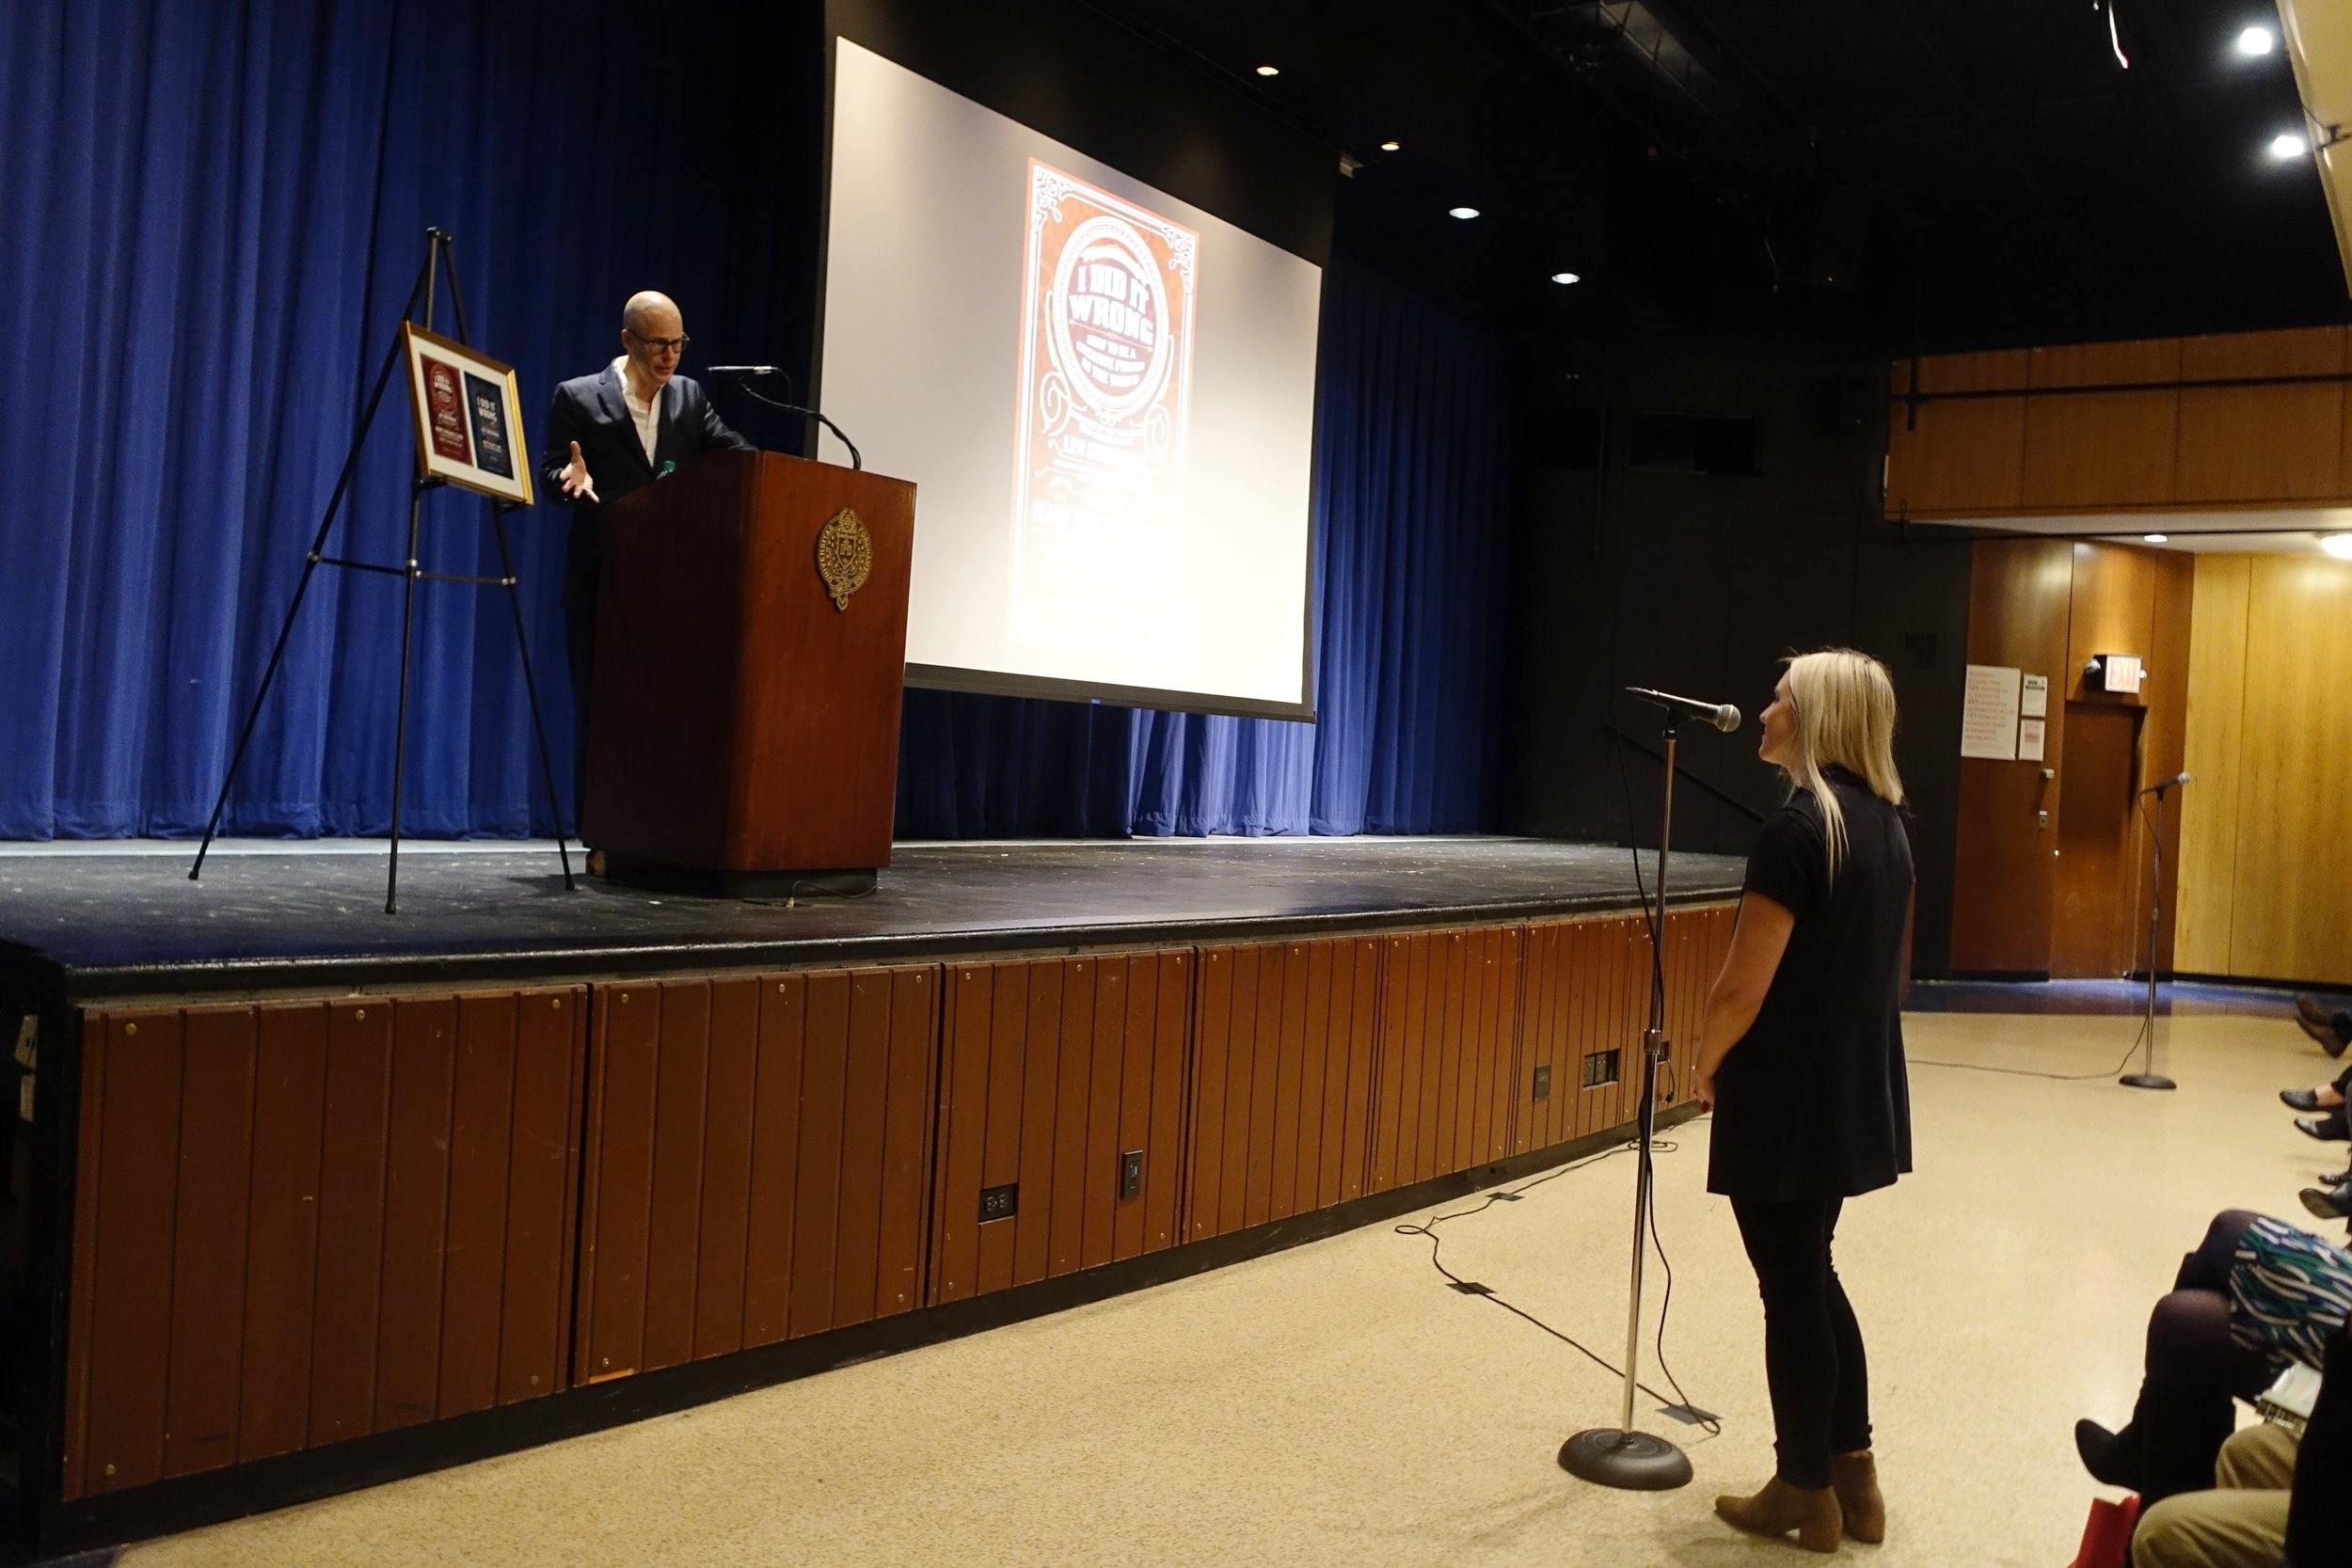 After his presentation, Grossman addressed questions from students and faculty in attendance.